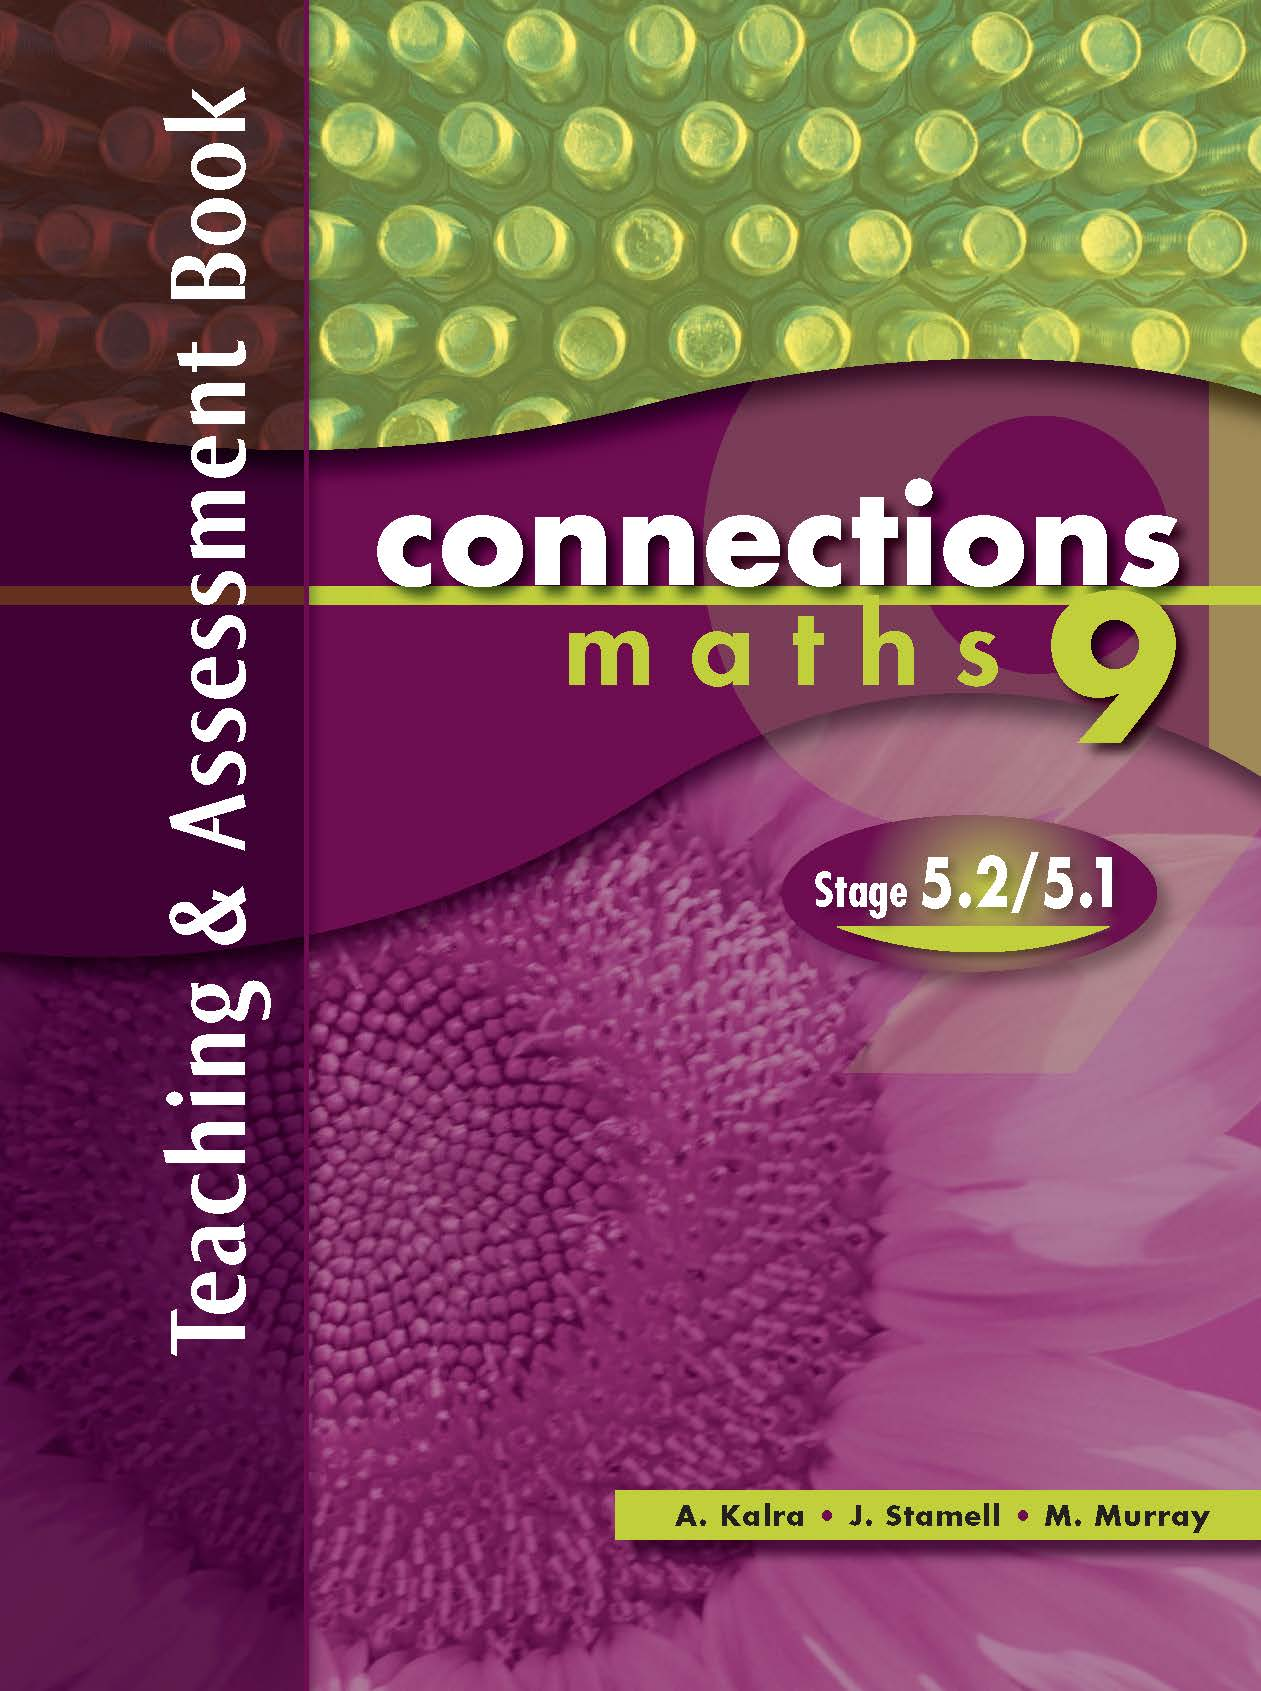 Pascal Press Connections Maths 9 Stage 5.2/5.1 Teaching & Assessment book Year 9